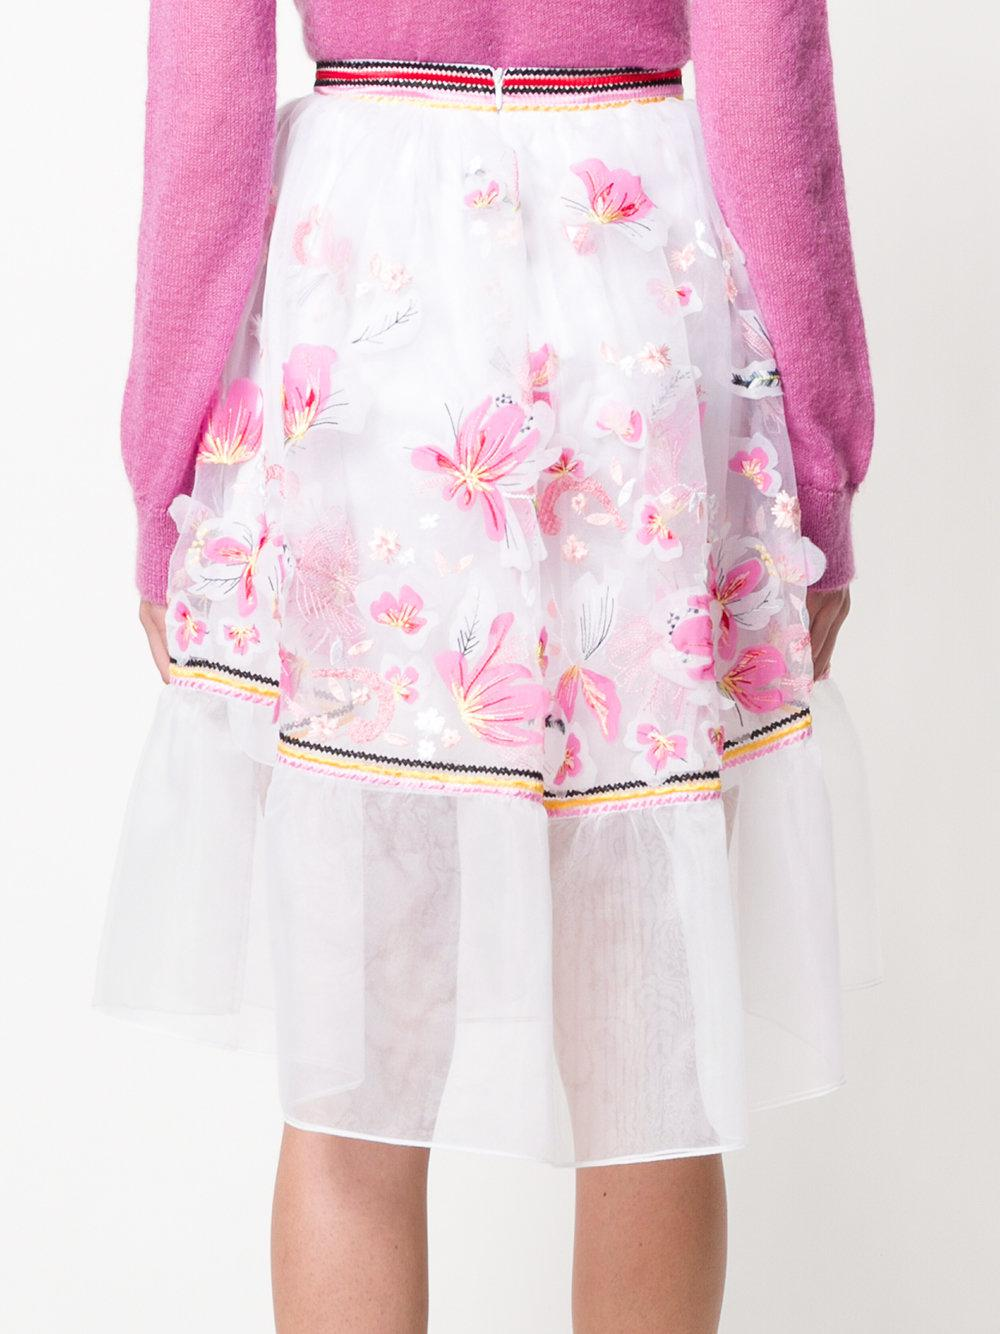 embroidered organza midi skirt - Multicolour Ermanno Scervino Newest Online Buy Cheap Outlet sqb5yXdS